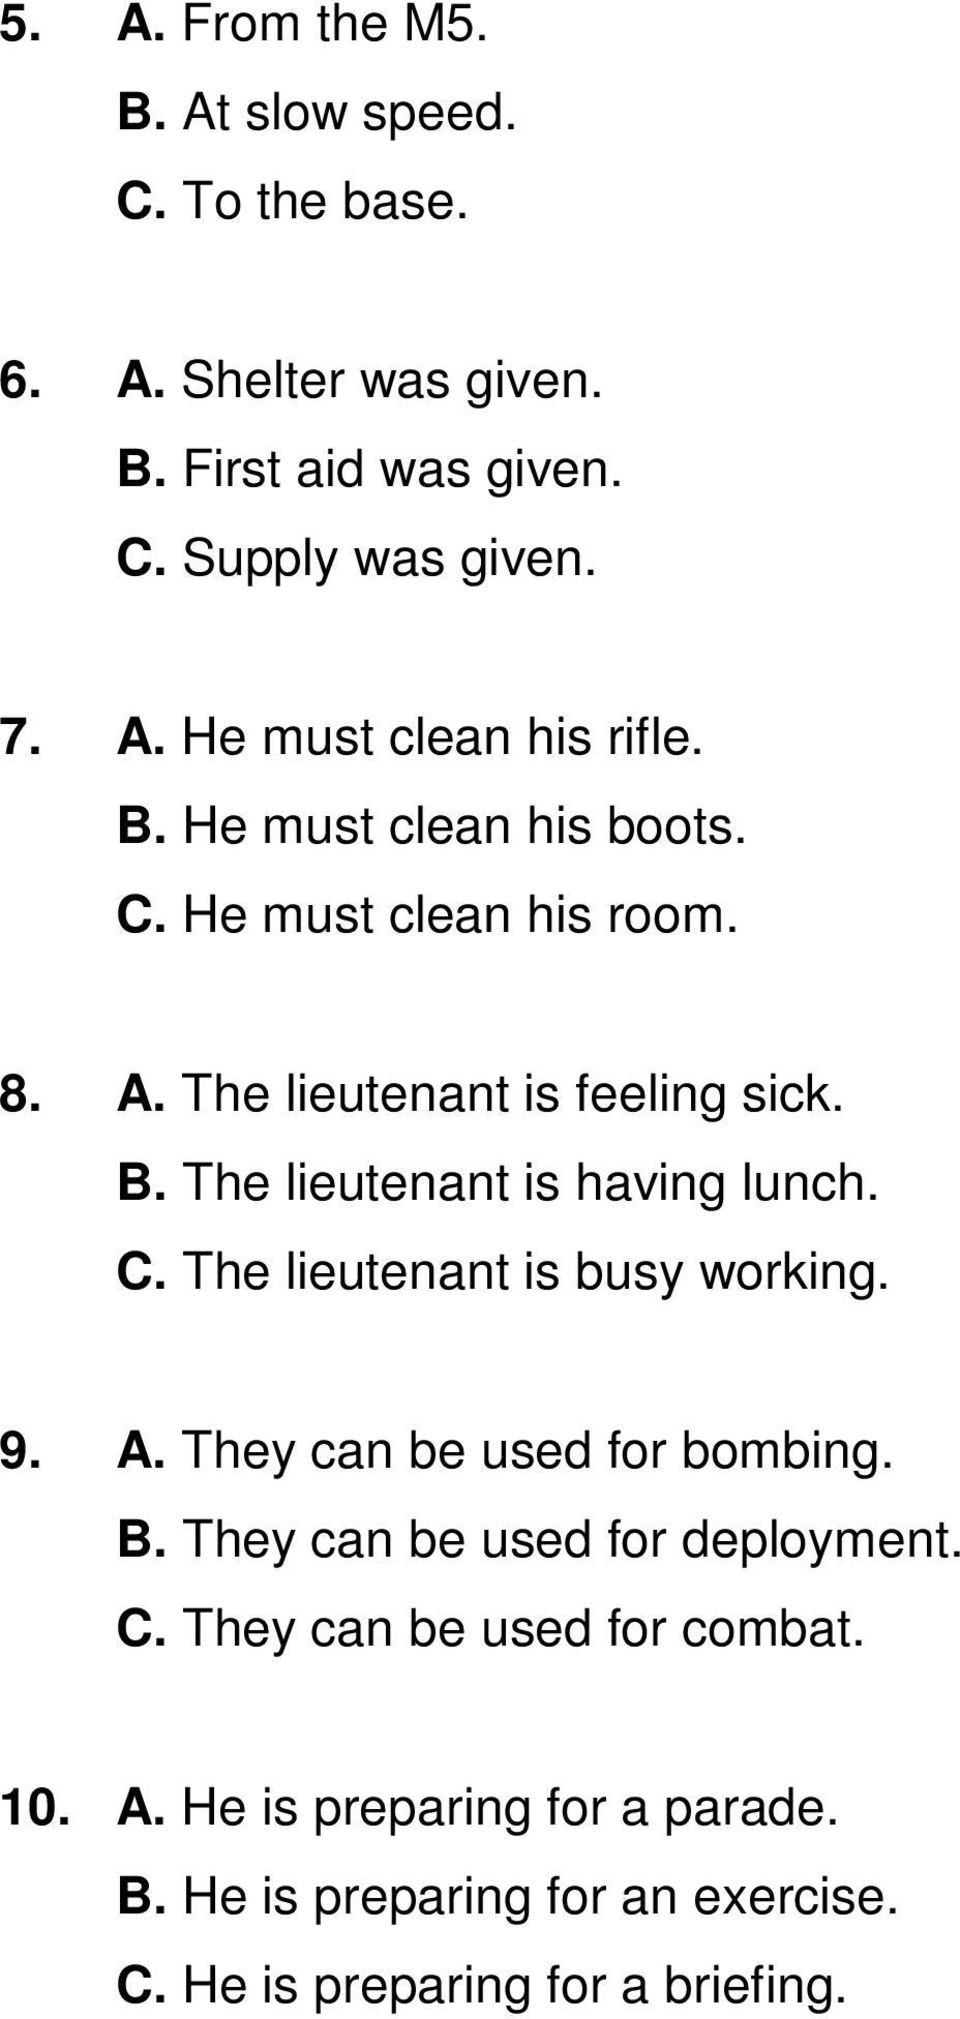 9. A. They can be used for bombing. B. They can be used for deployment. C. They can be used for combat. 10. A. He is preparing for a parade.